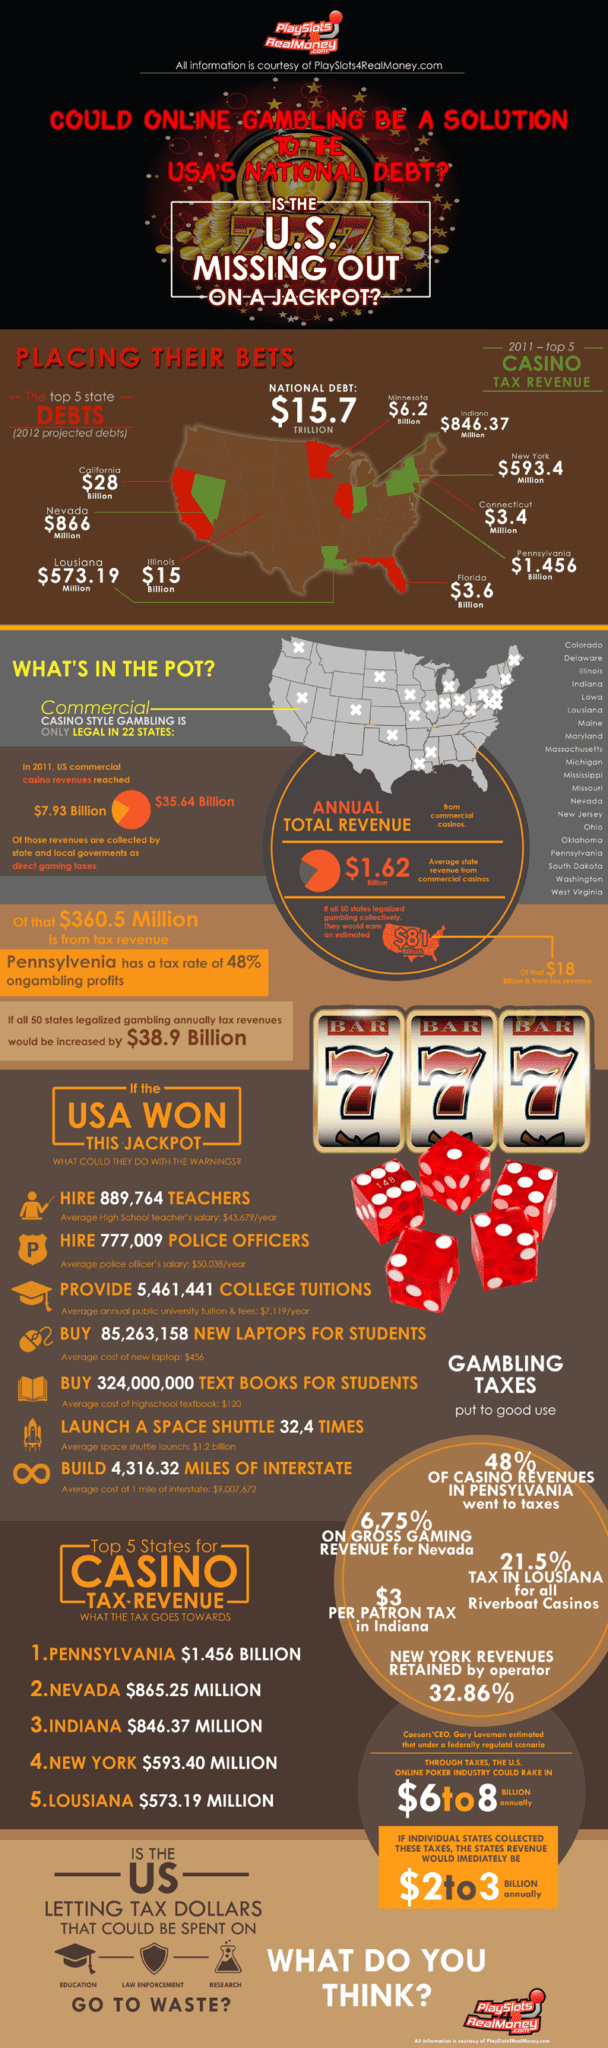 best online real money casino